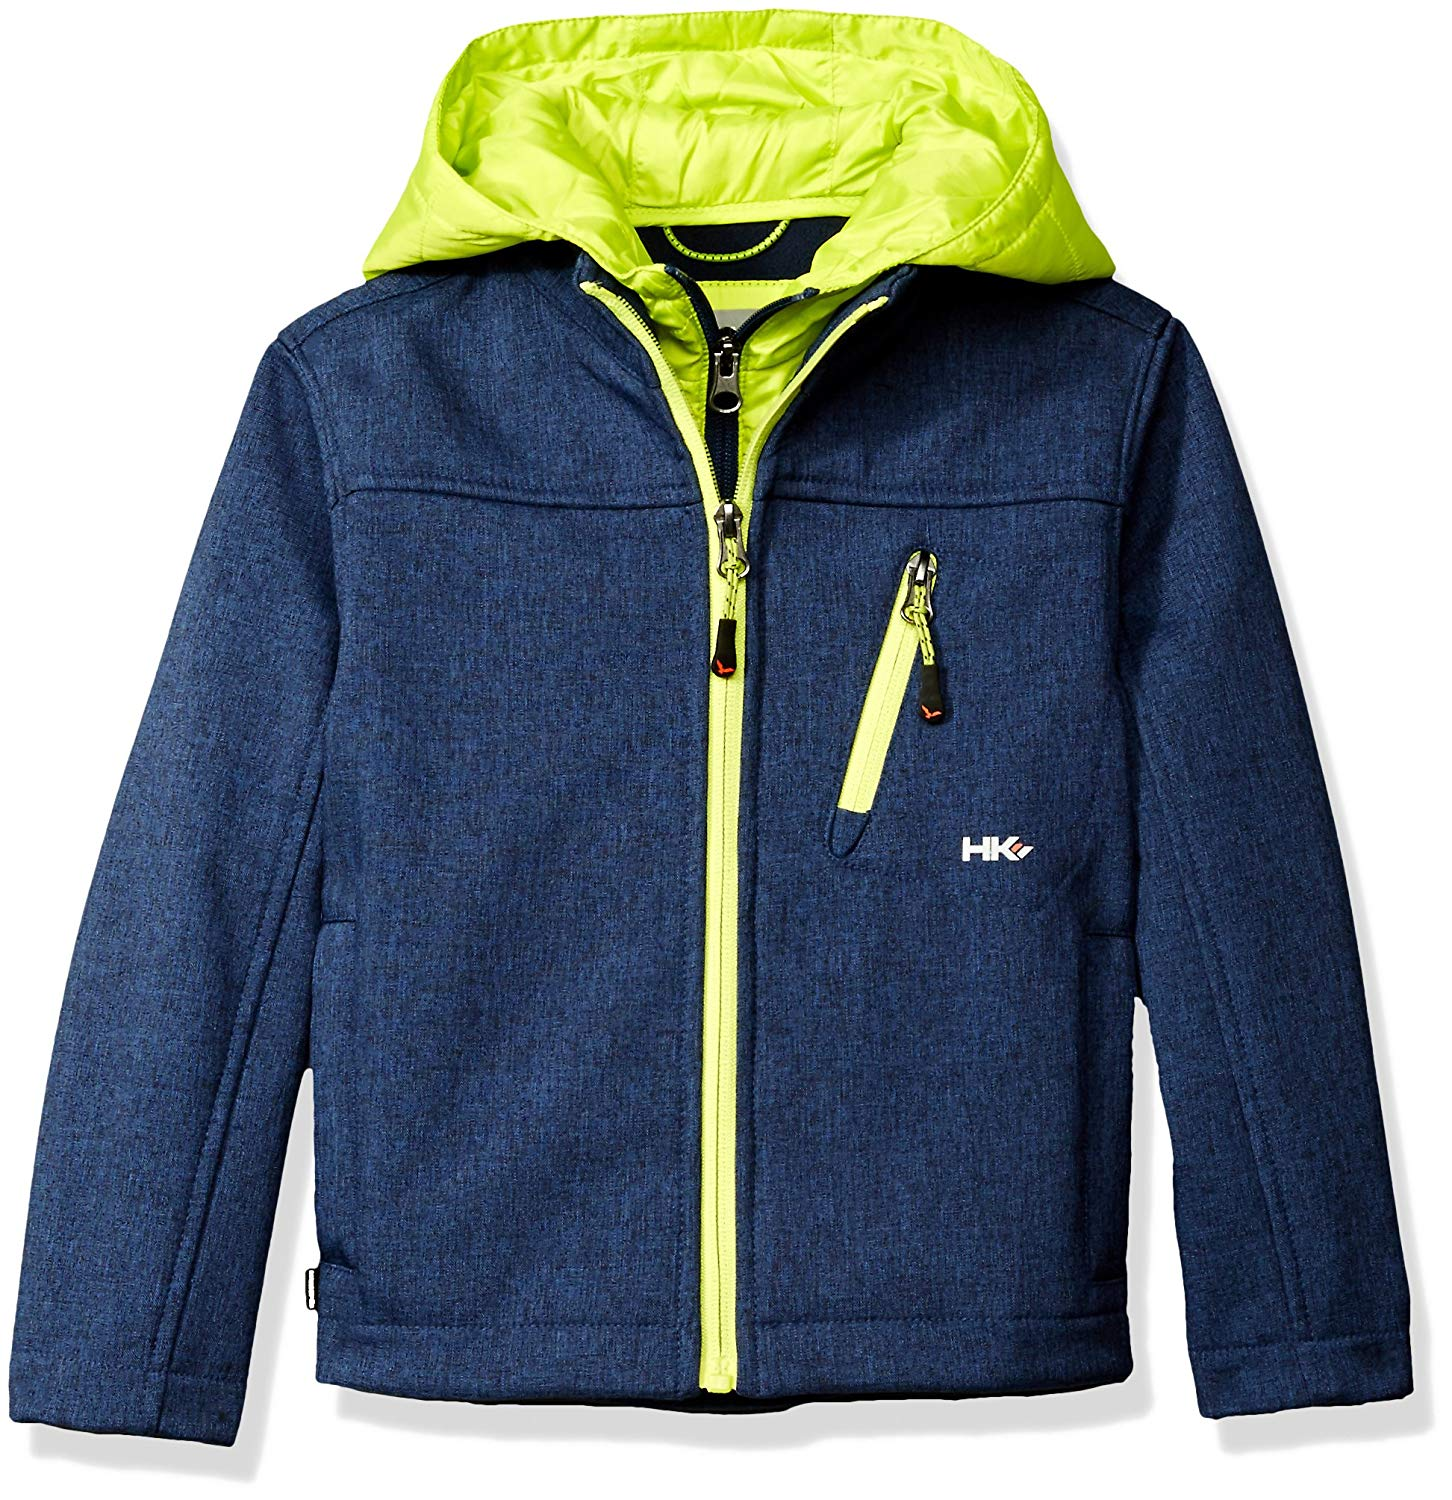 Hawke & Co Boys' Soft Shell Jacket with Quilted Vestee and Hood